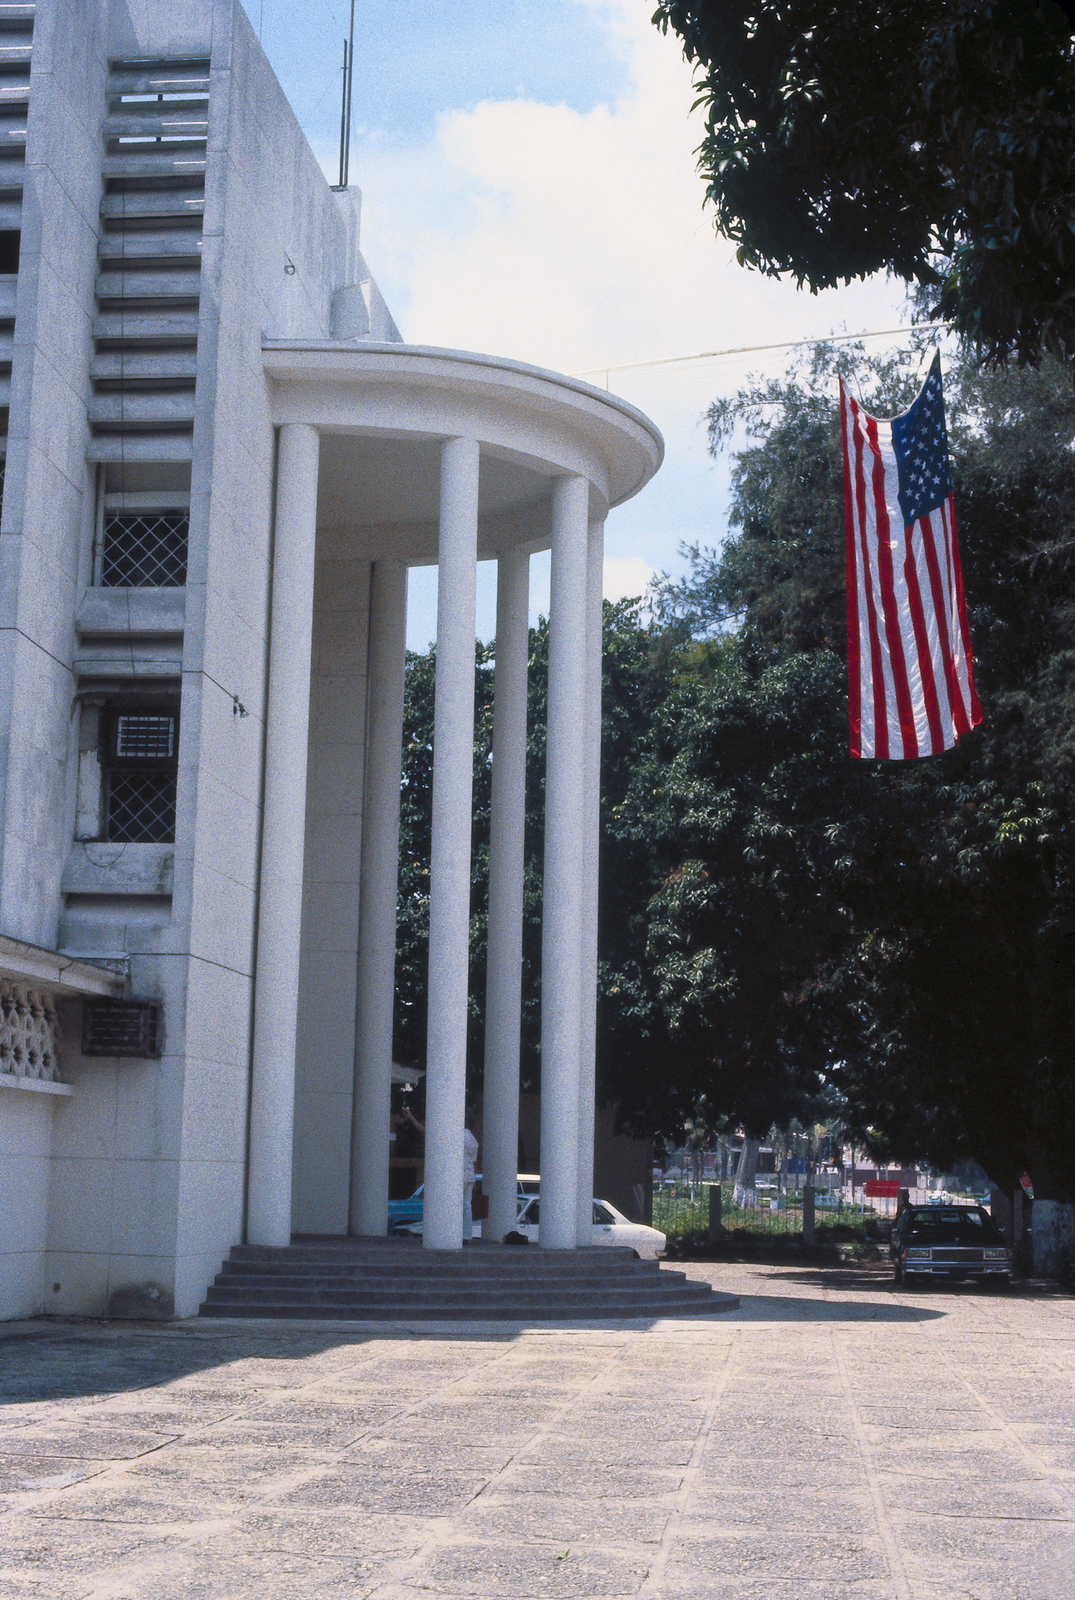 Brazzaville - Chancery Office Building - 1980